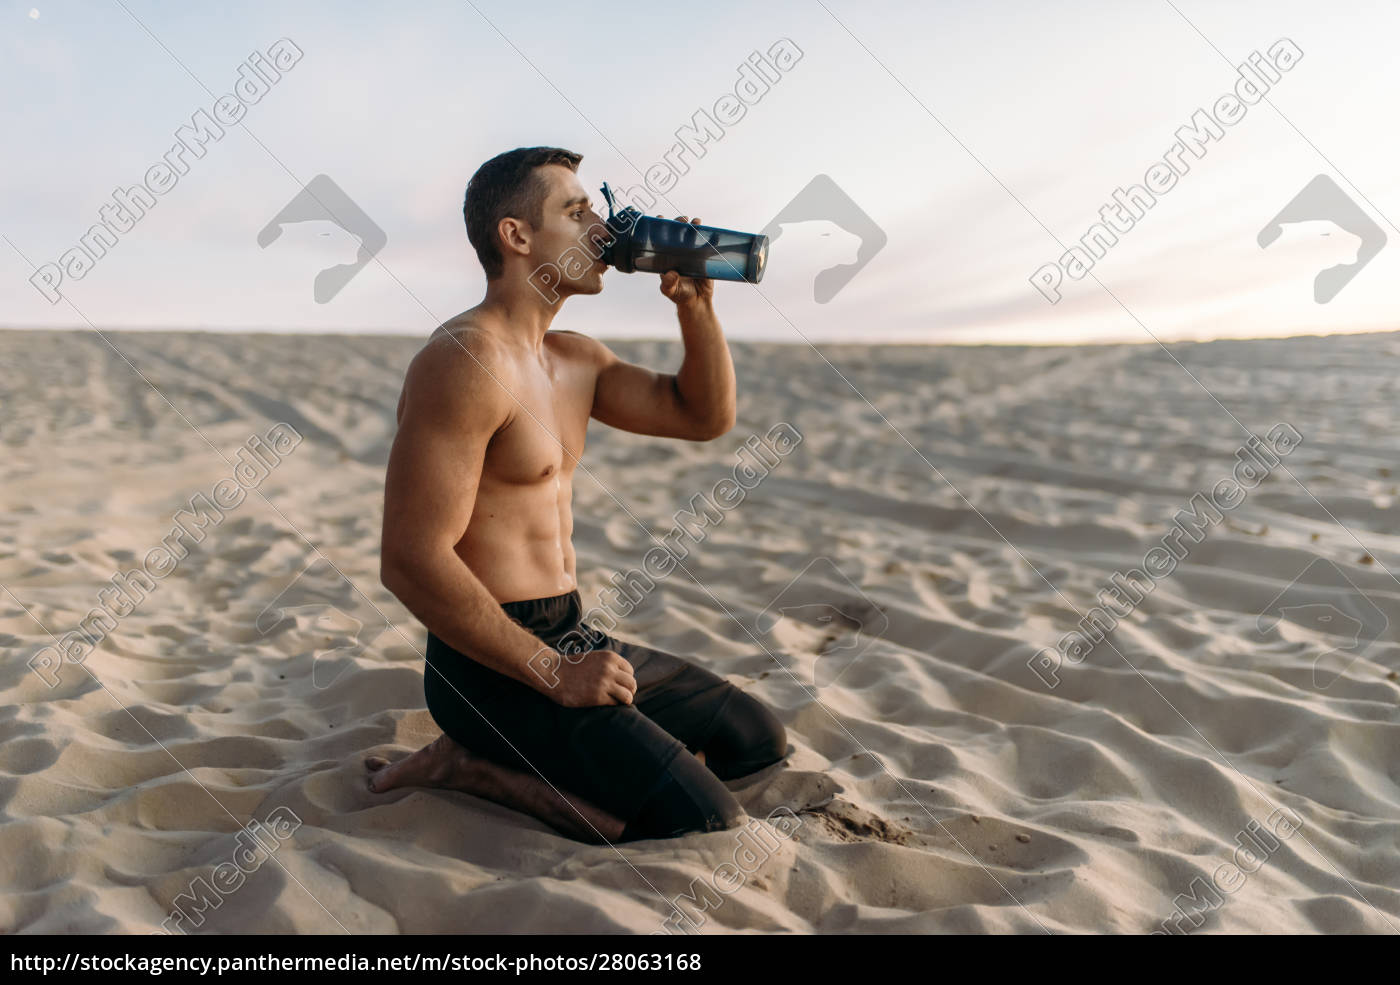 male, athlete, drinks, water, after, workout - 28063168